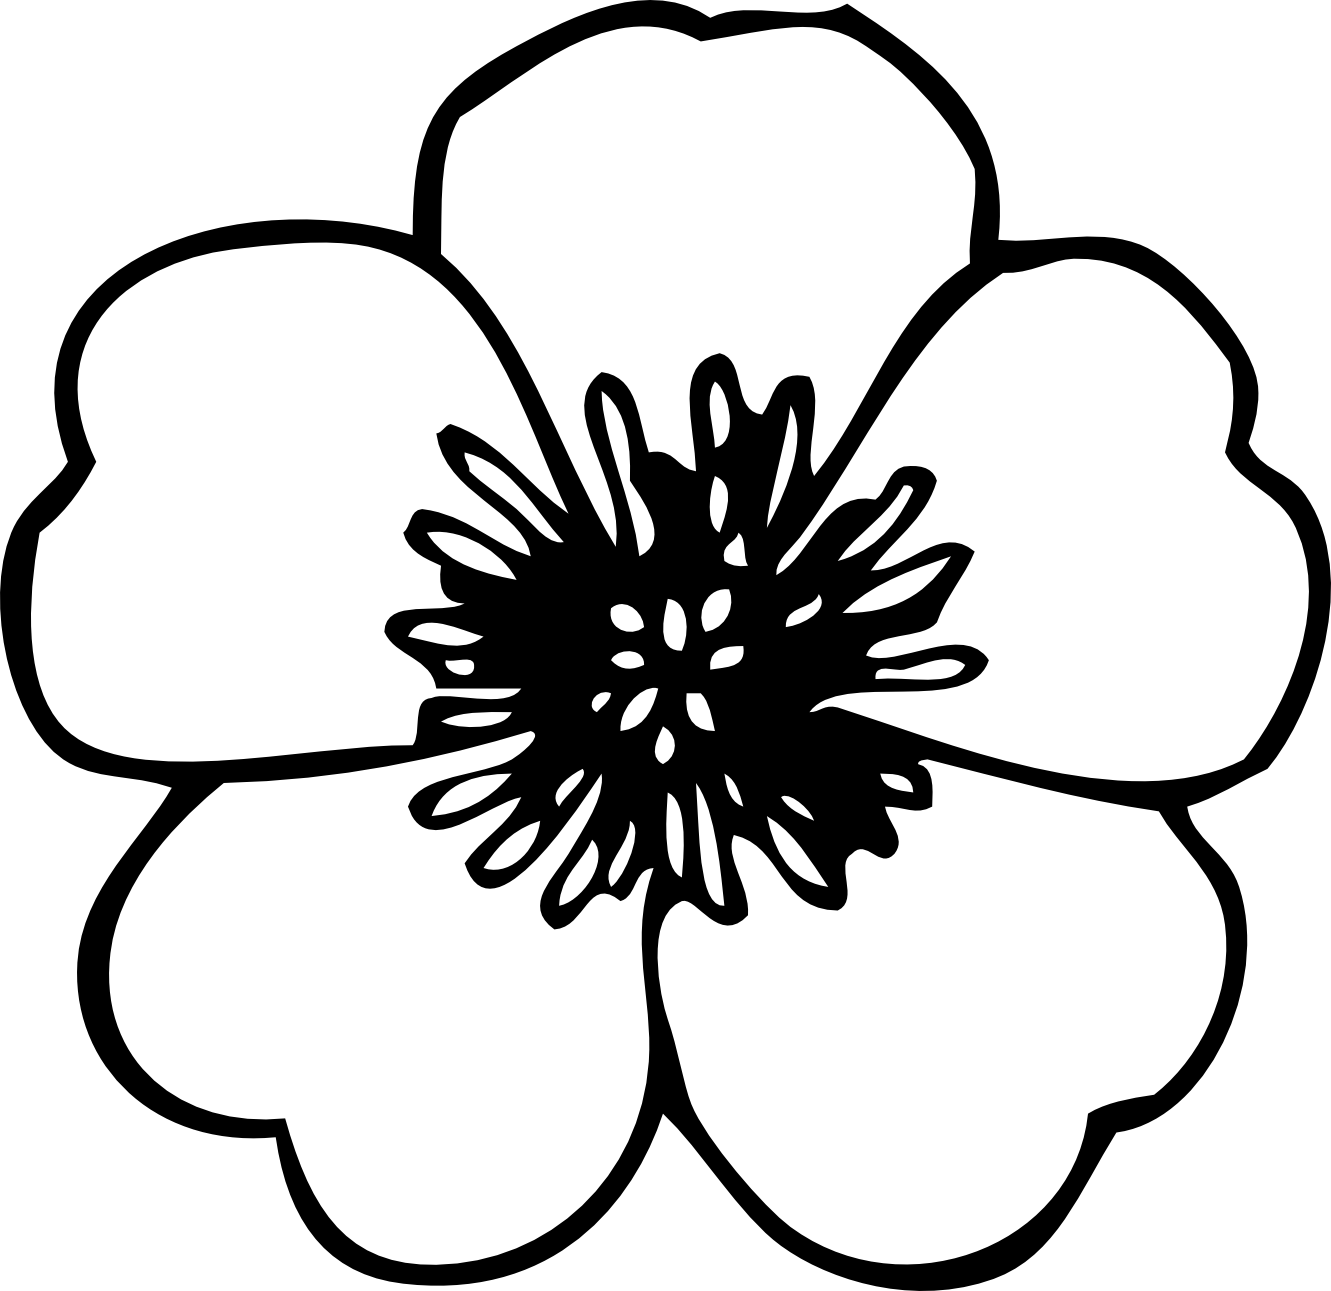 Clip Art Flower Clip Art Black And White simple flower clipart black and white panda free